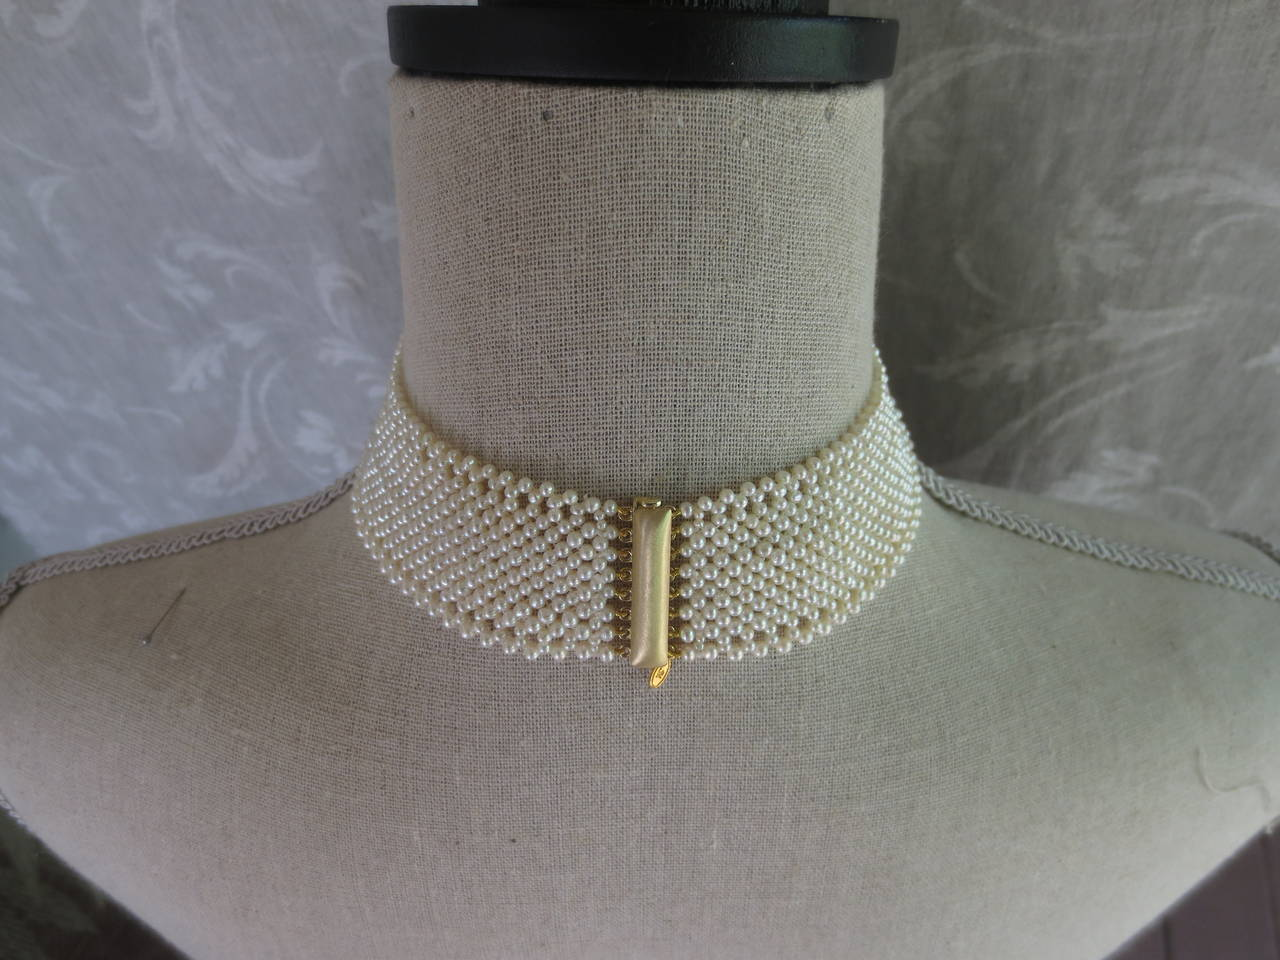 Marina J. Woven Pearl Choker Necklace For Sale 2